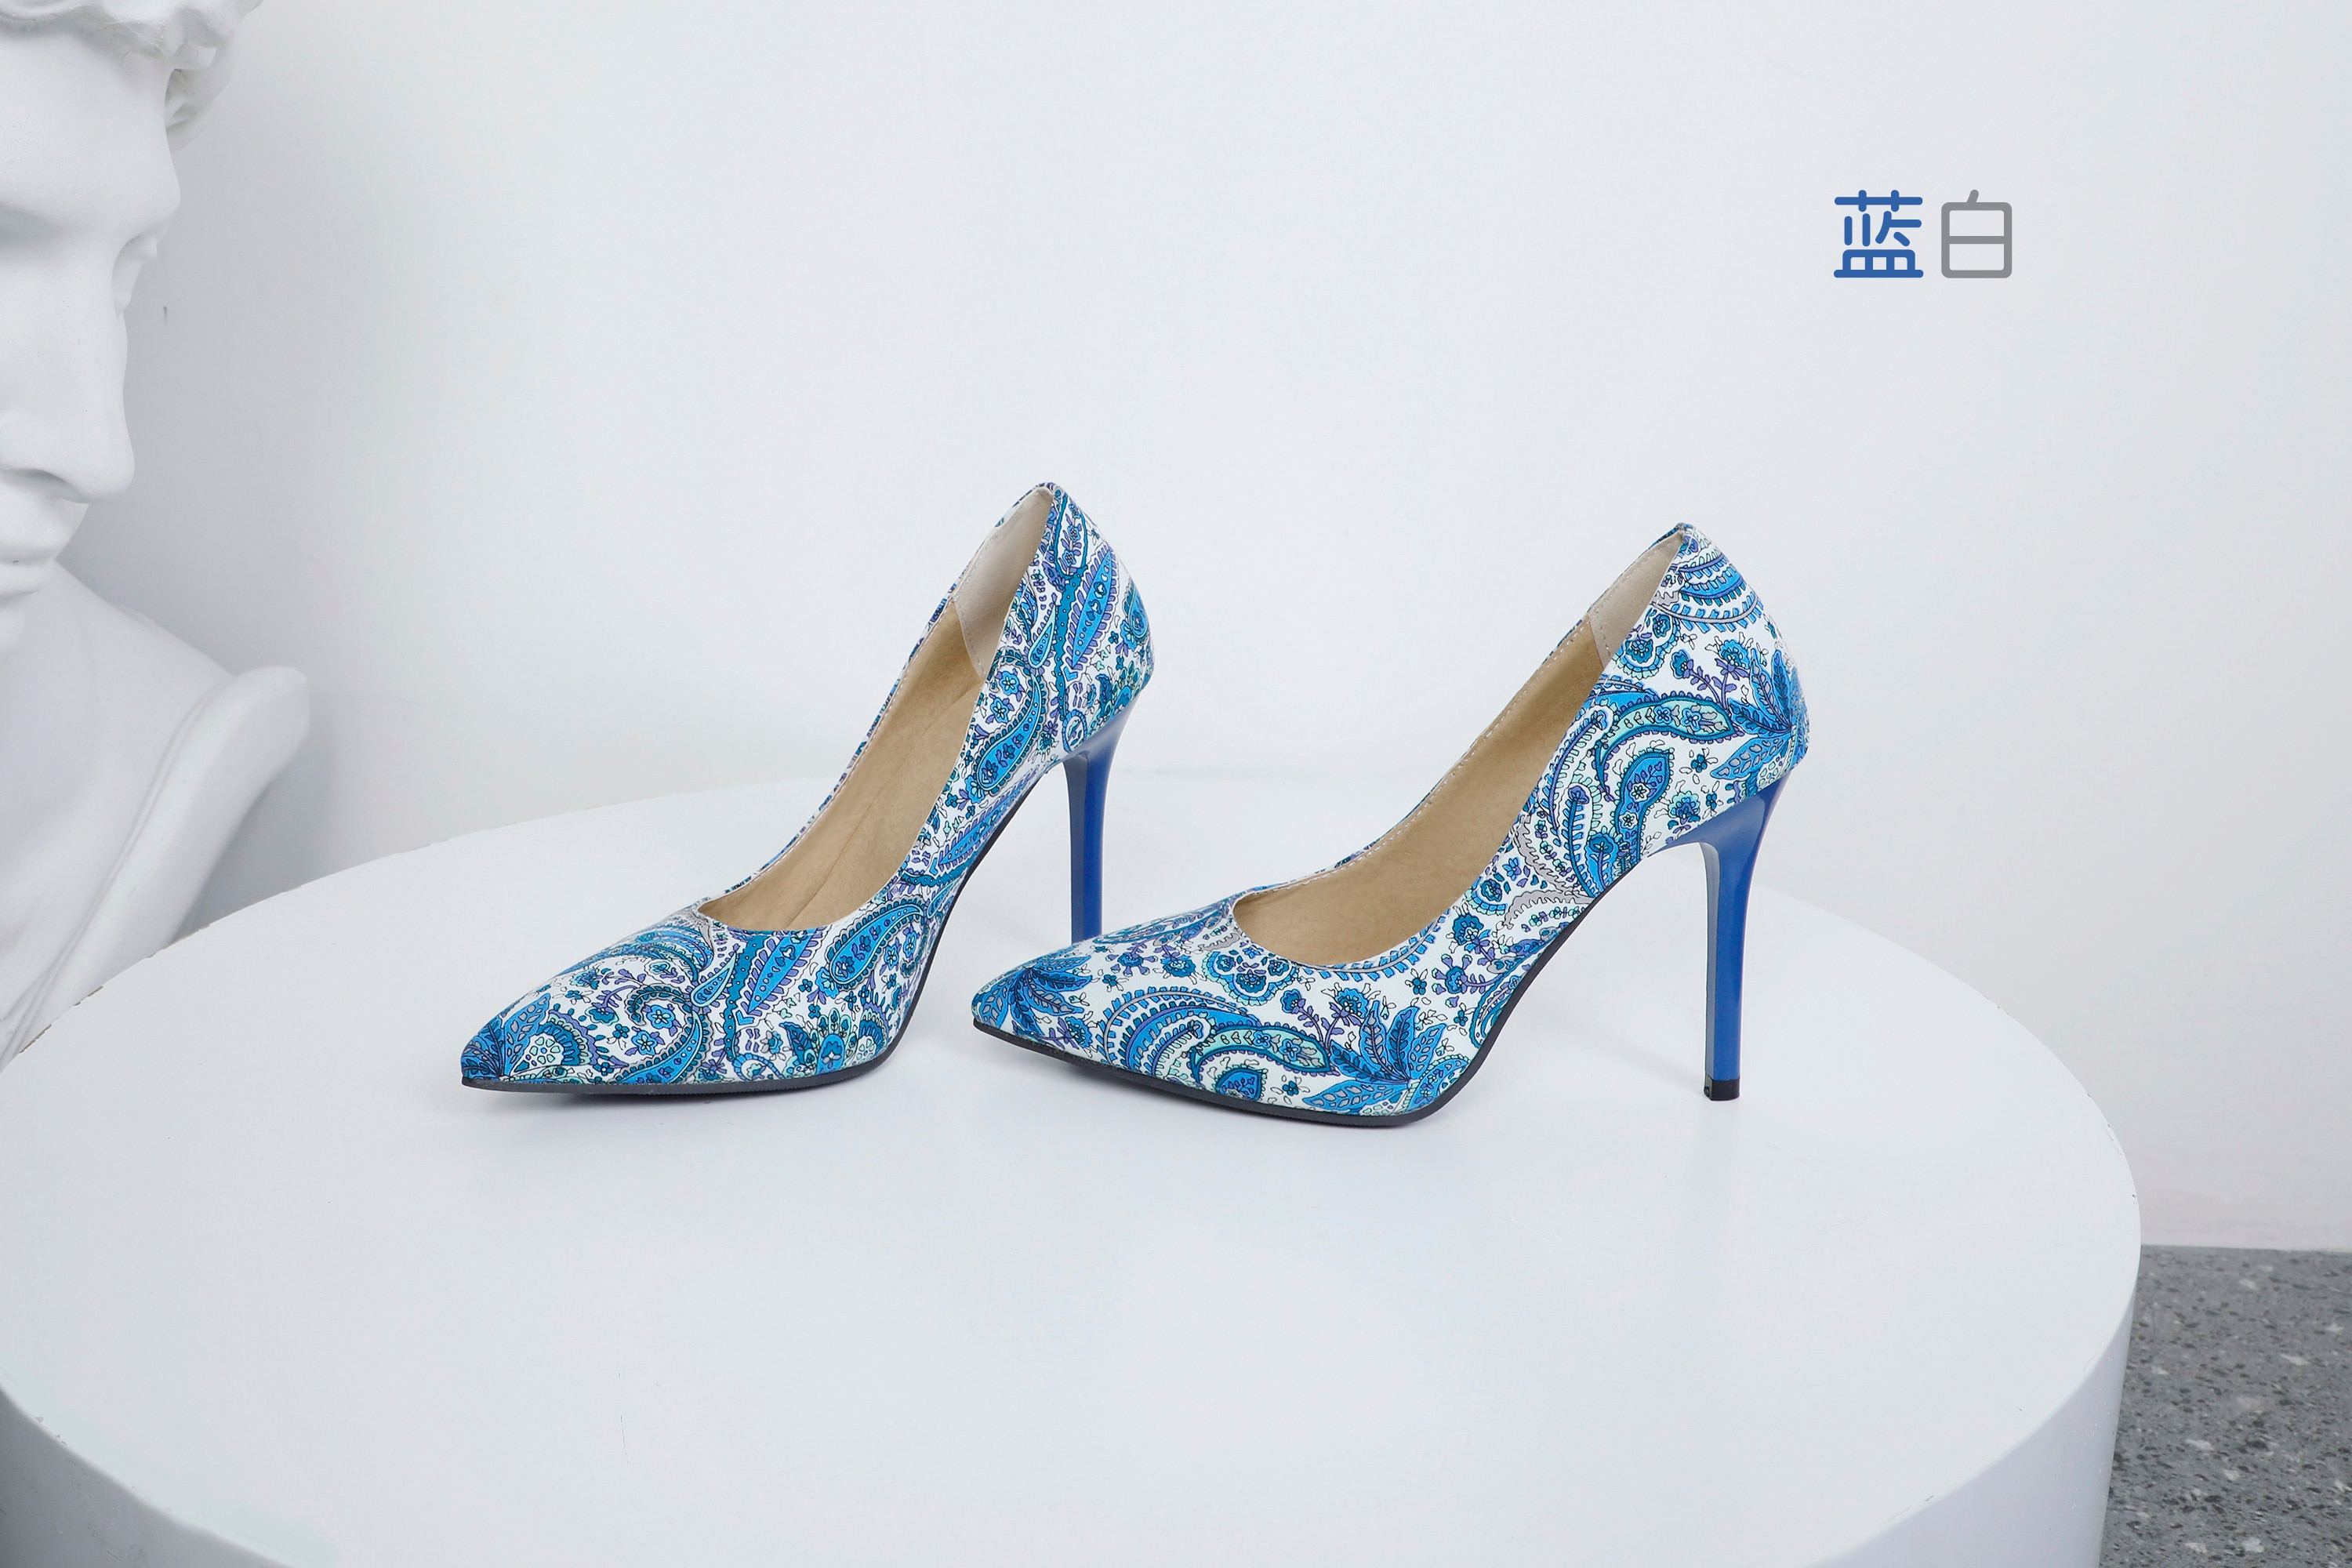 All Melody Women Super High Thin Heel Brocade Colorful Fashion Classical Charming Spring New Style Female Shoes Botas Mujeres